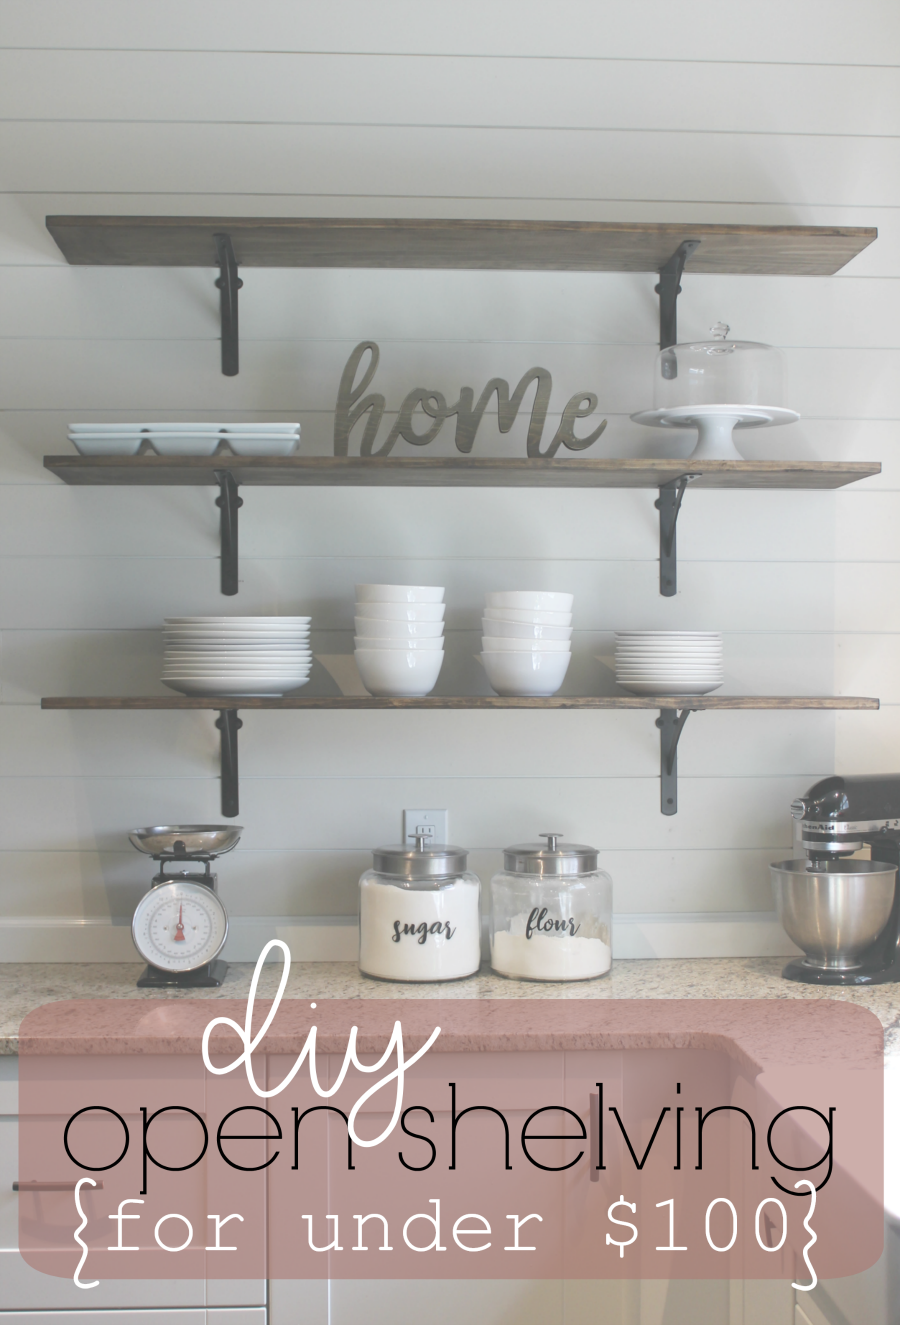 How to build DIY kitchen shelves - Pinterest image